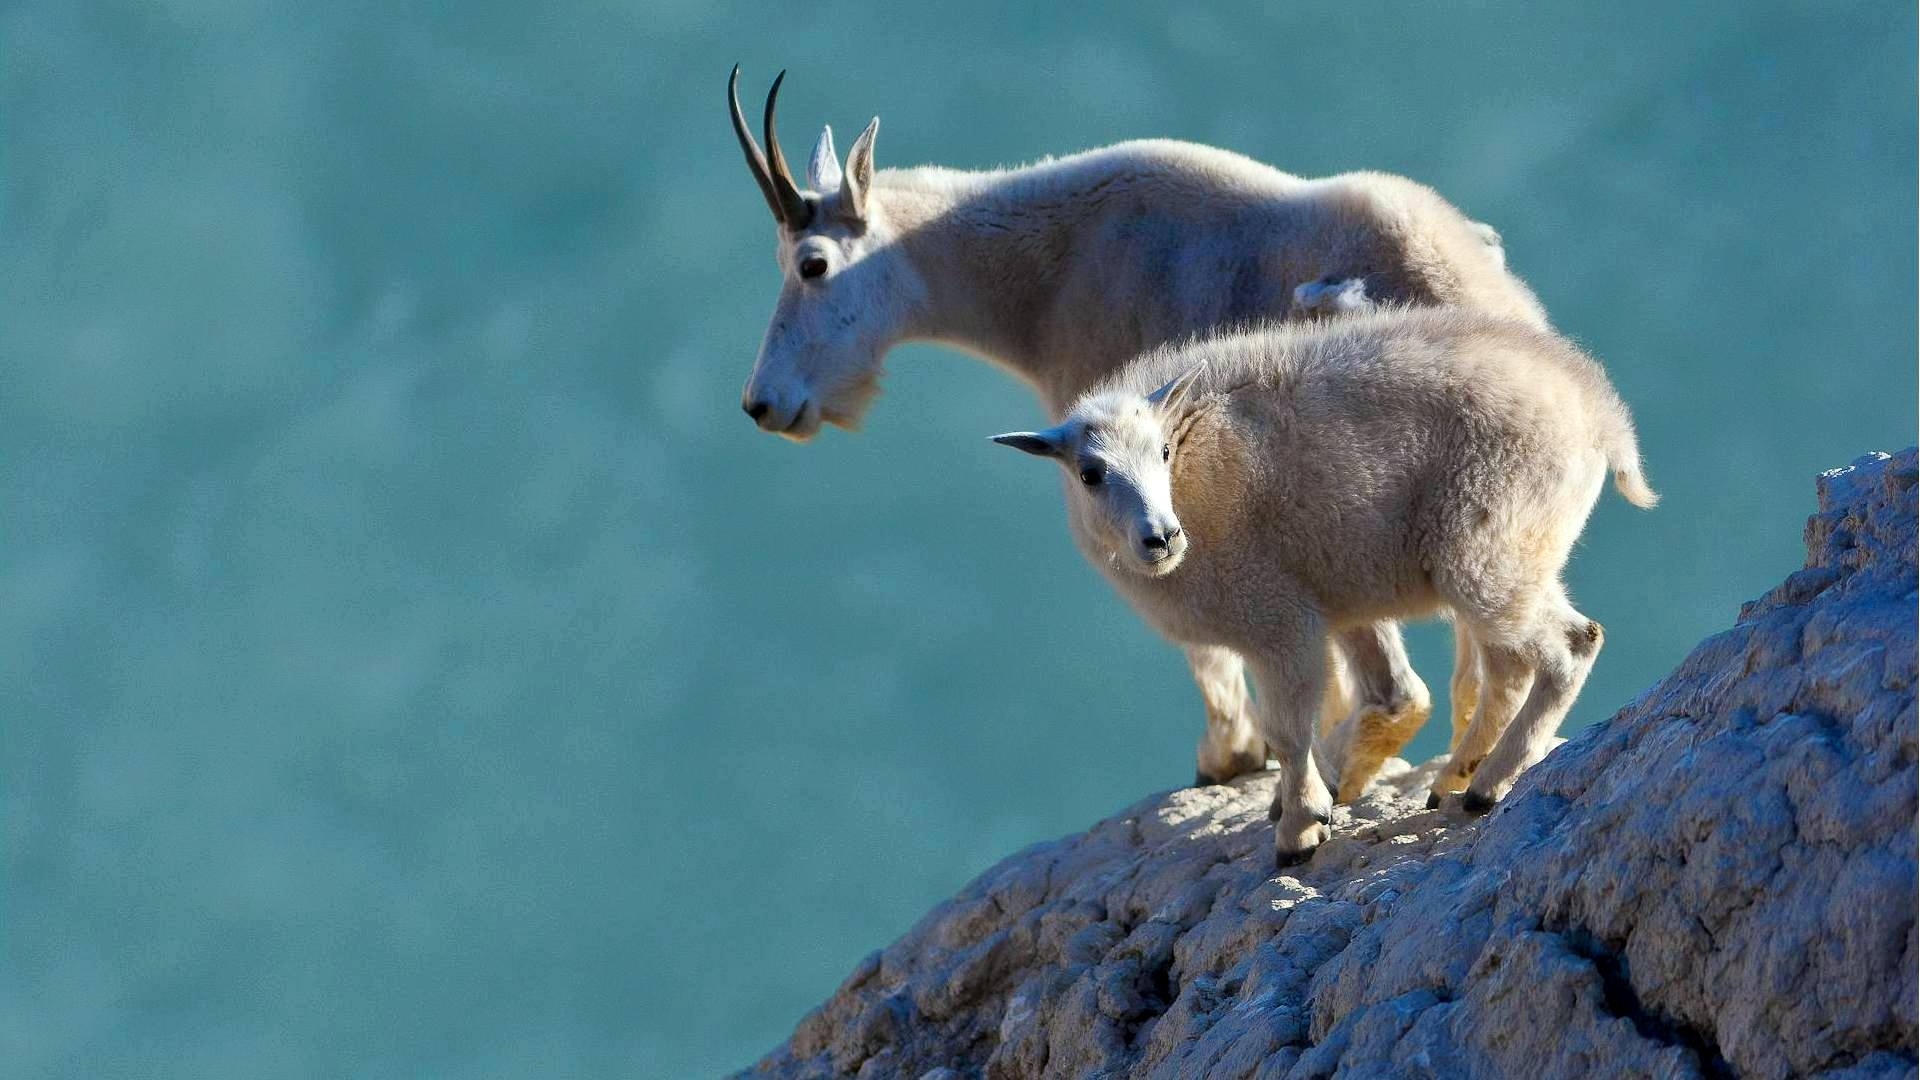 mountain goat wallpapers 1920x1080 345222